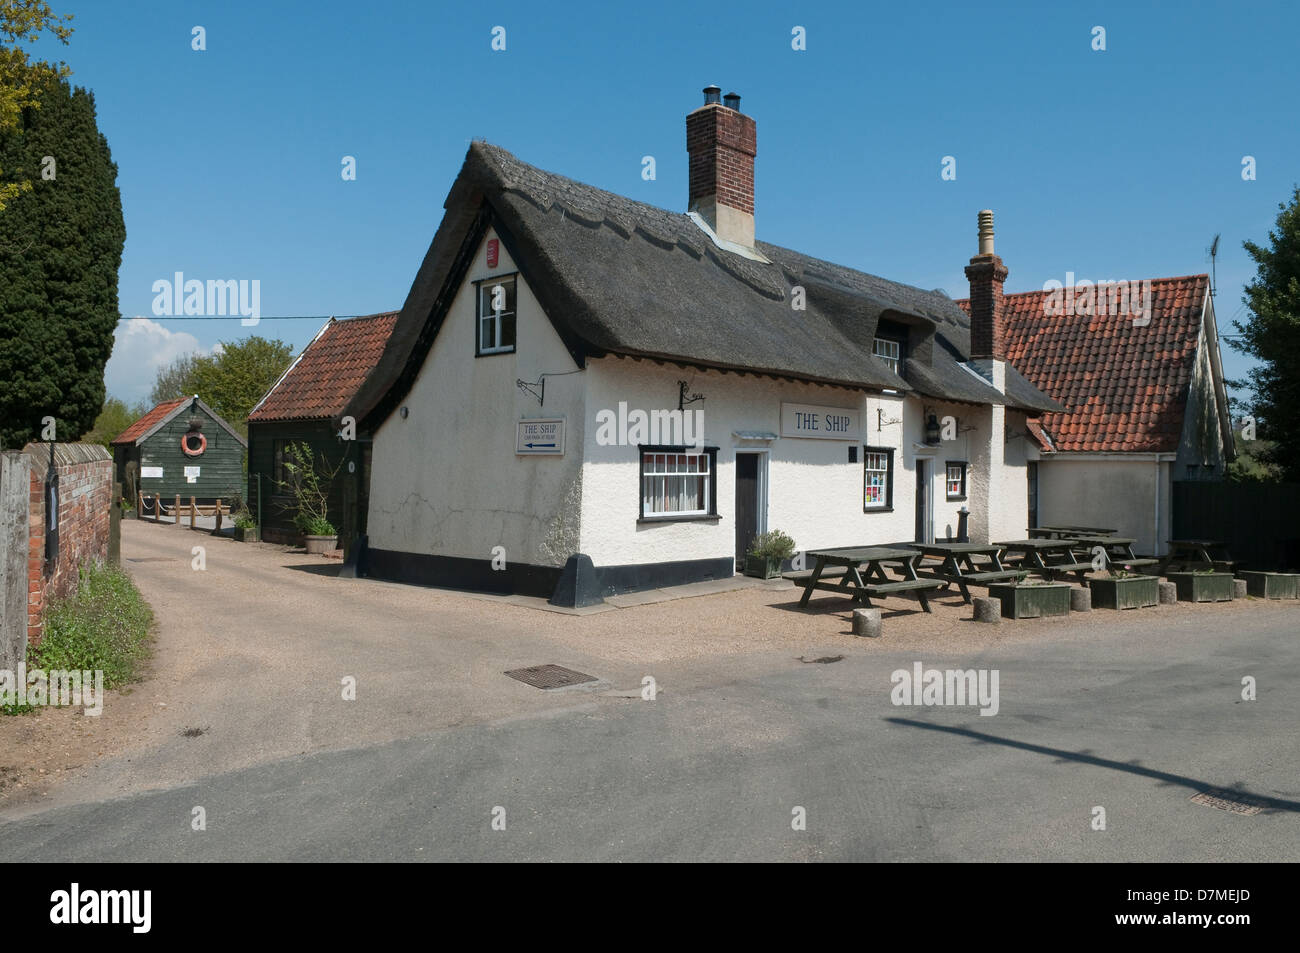 The Ship - local pub in Levington, Suffolk, UK Stock Photo: 56384229 ...